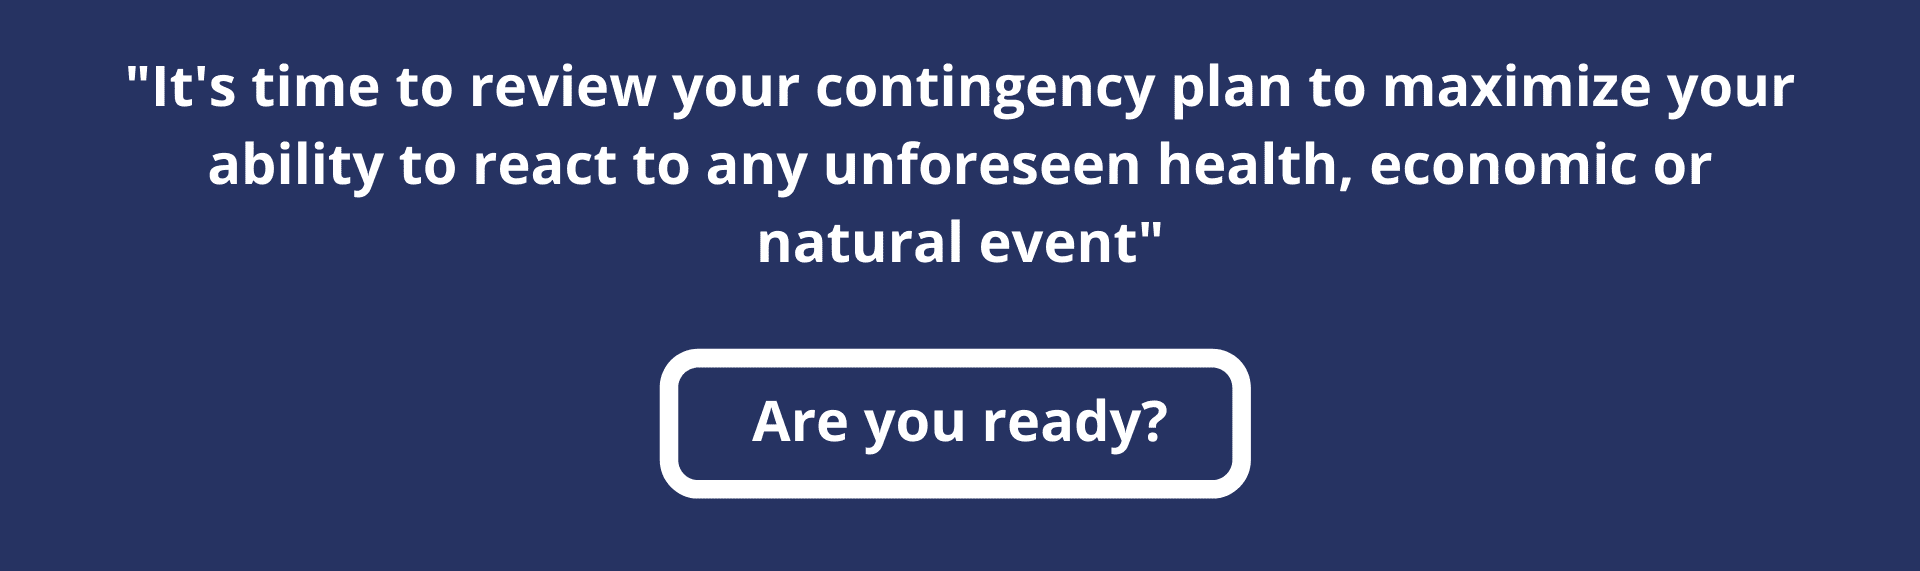 27.10 ENG Contingency 1